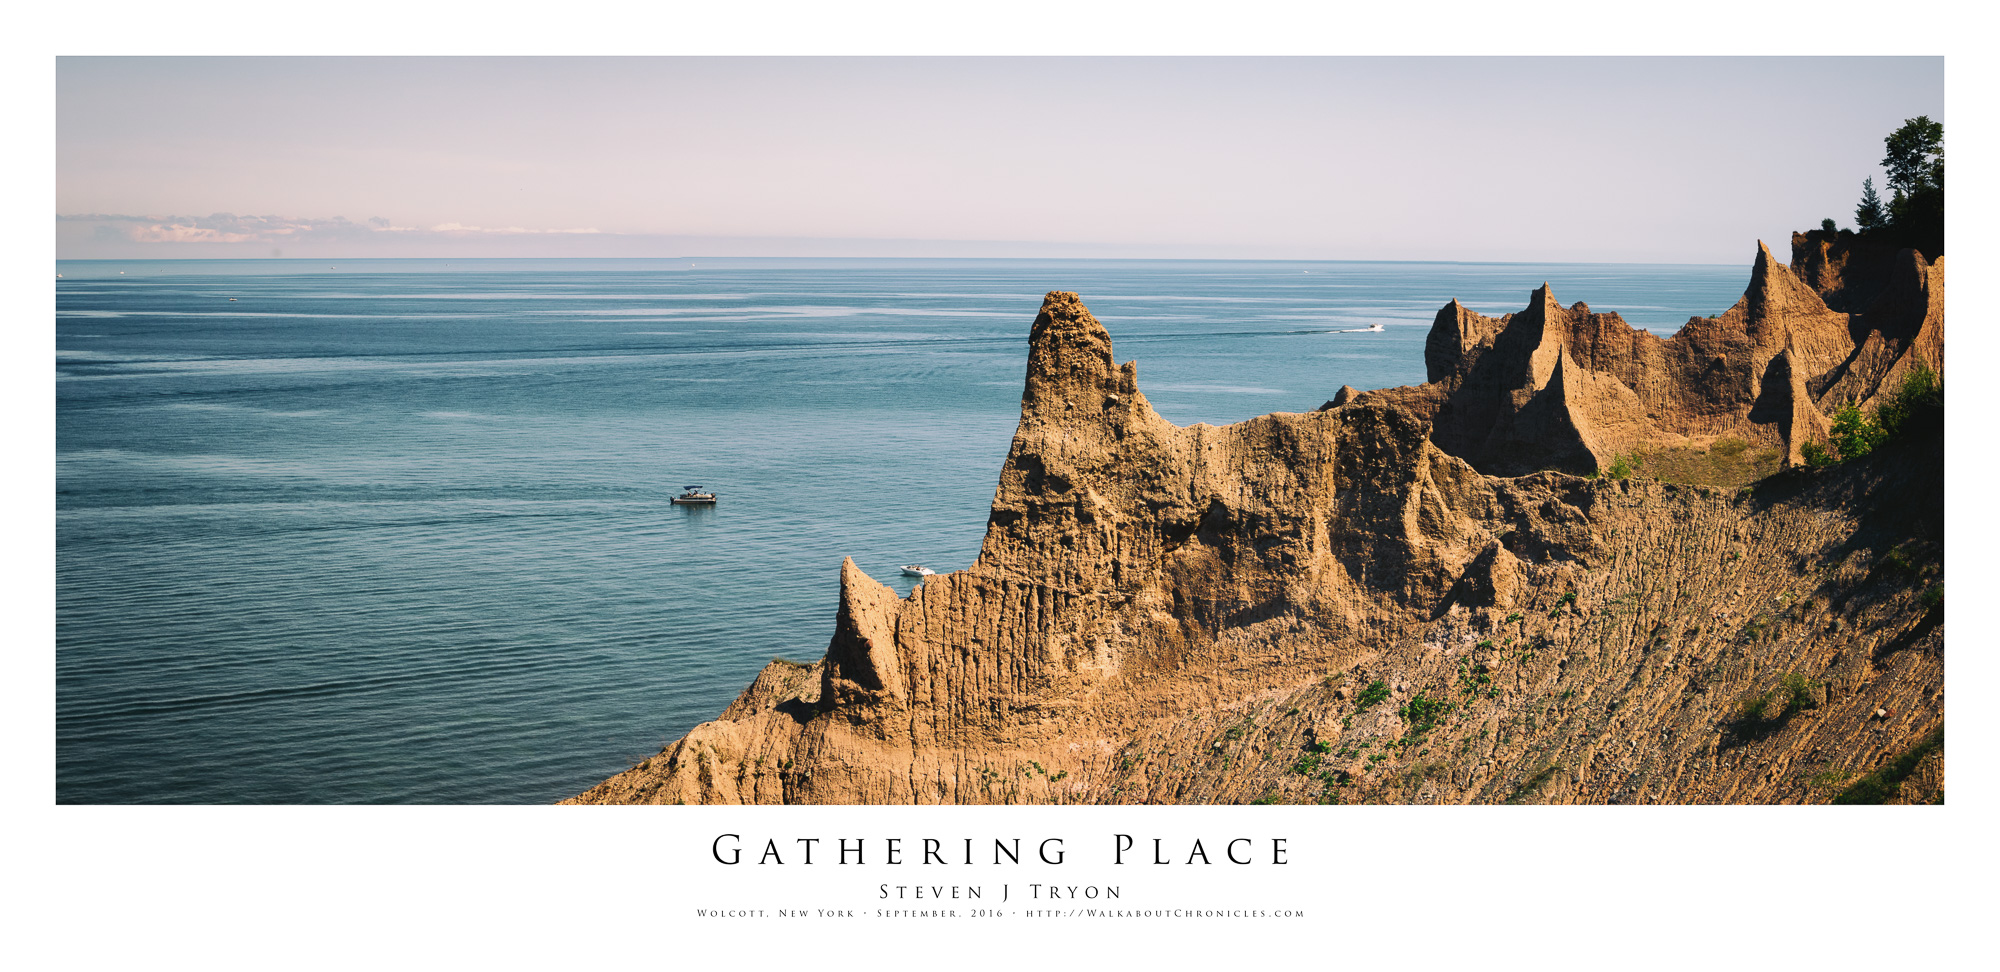 Gathering Place